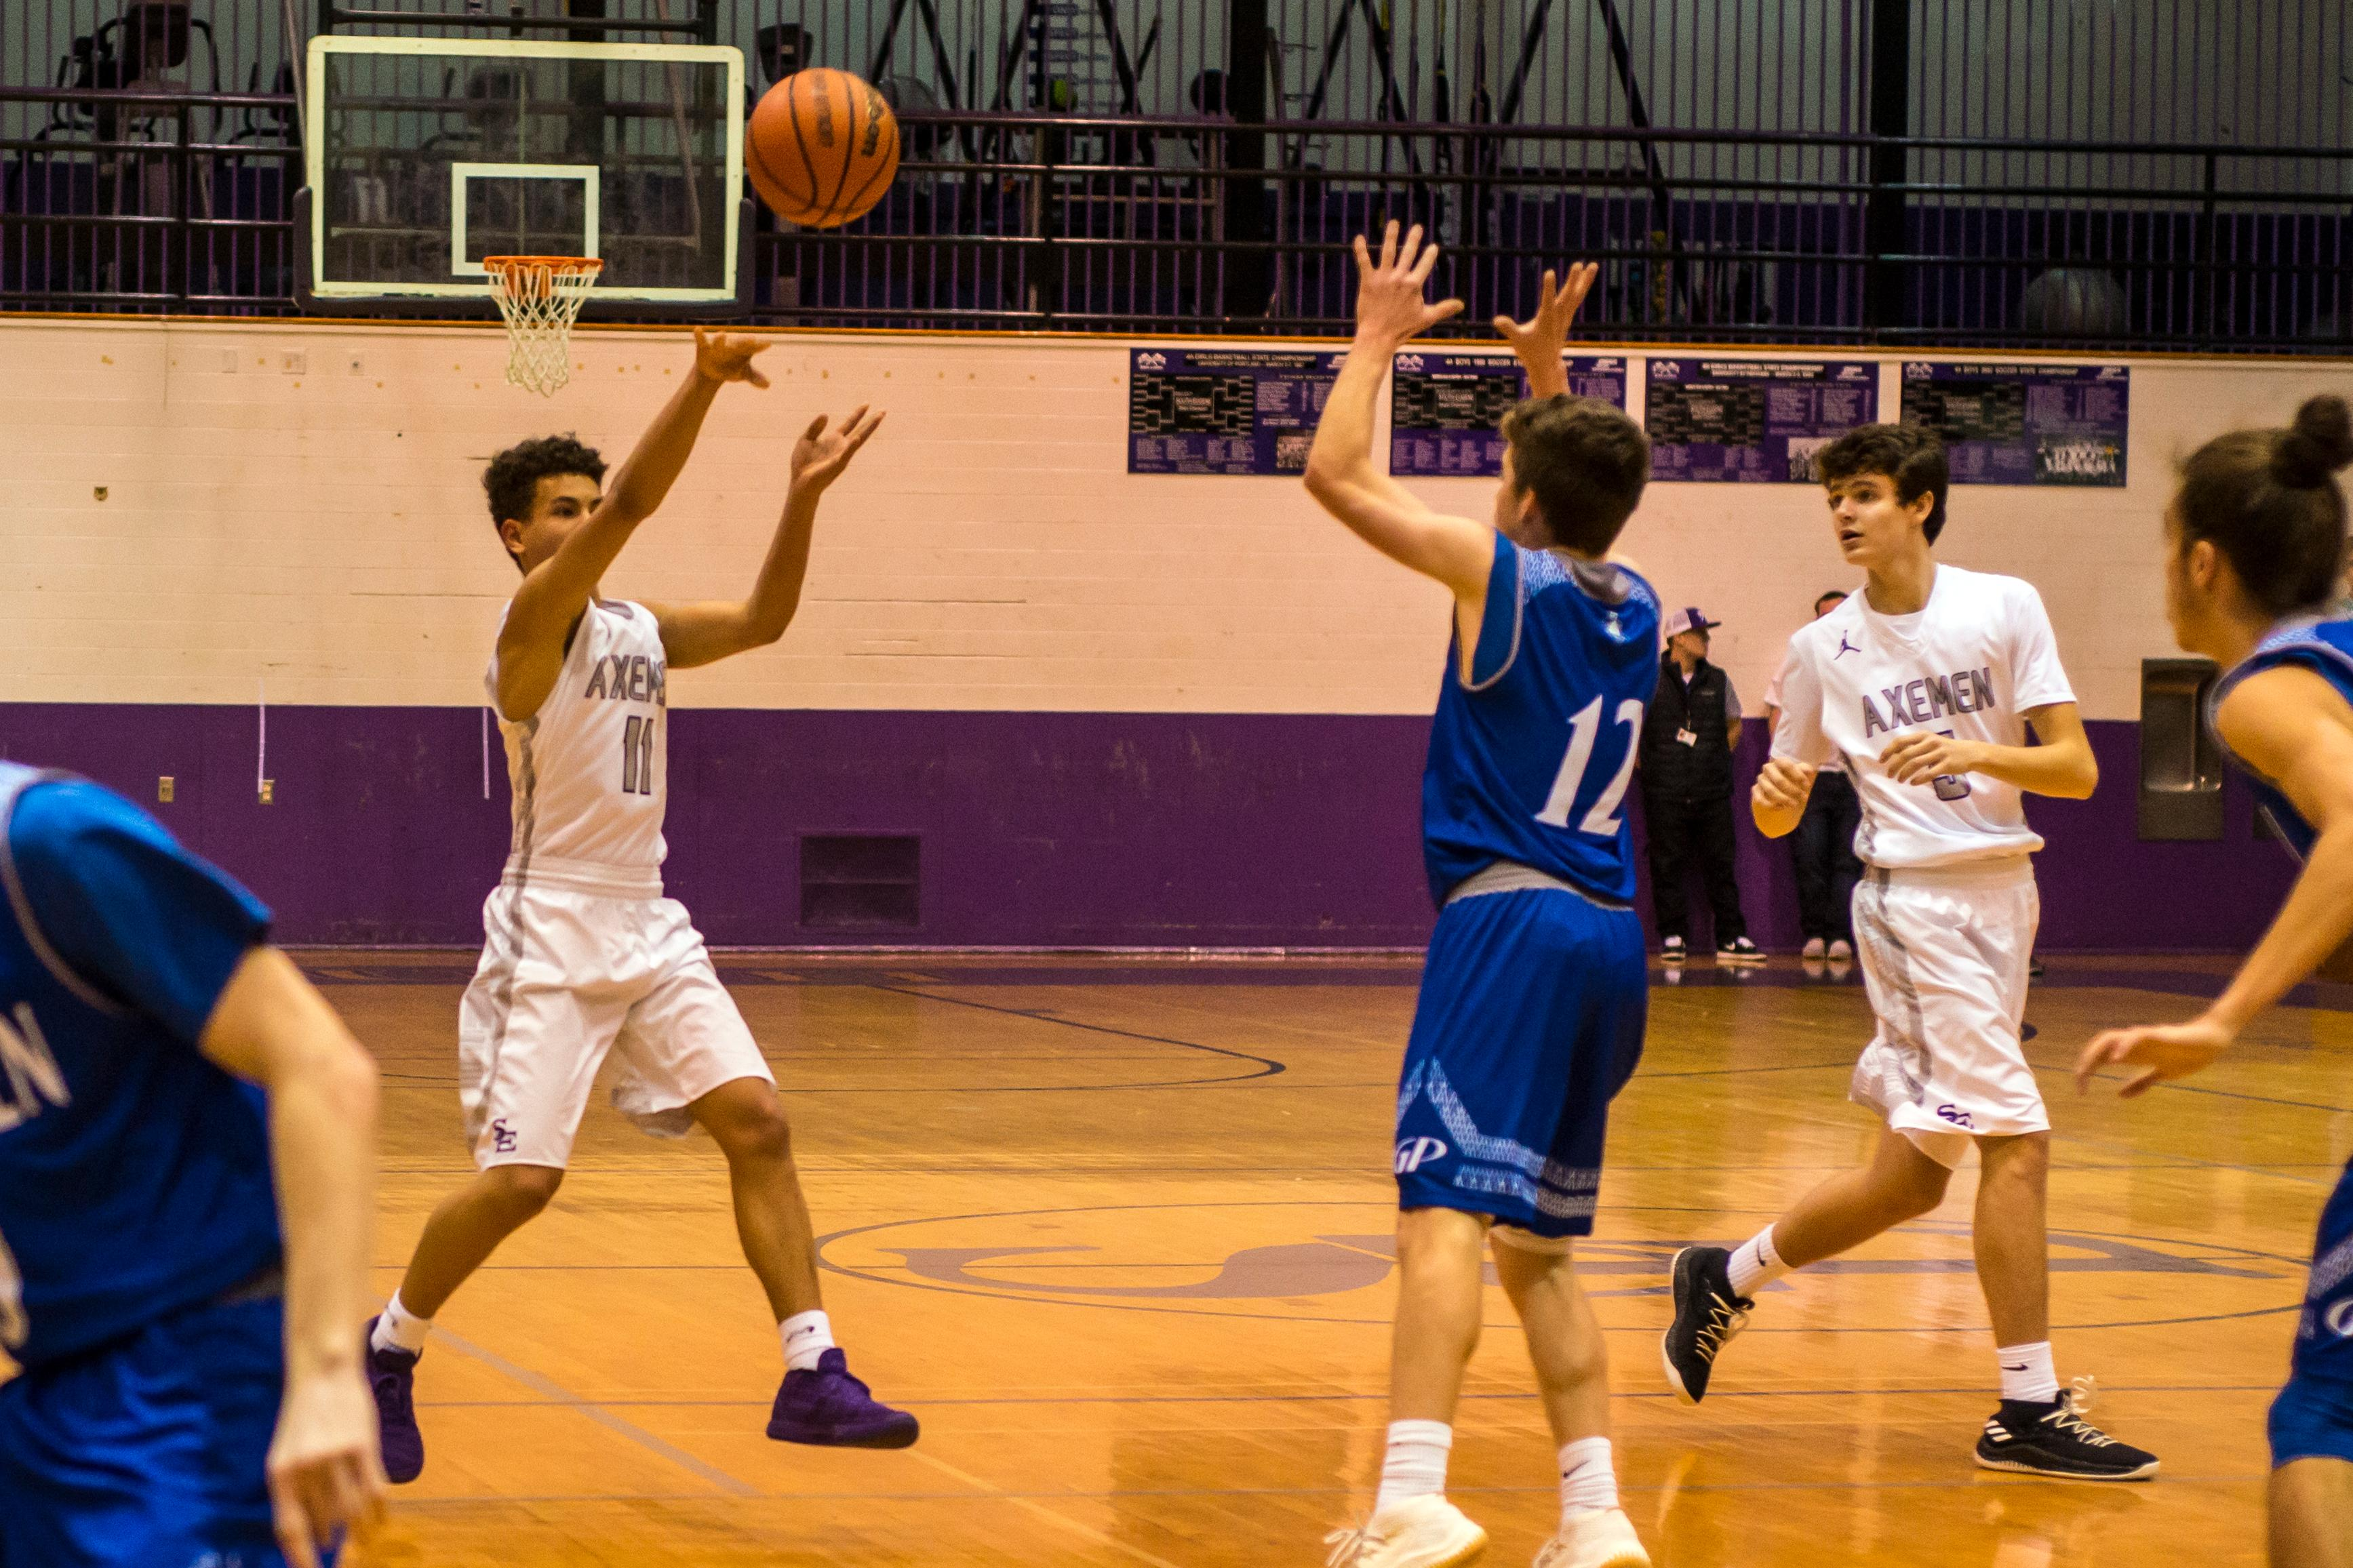 Grants Pass picks up a big SWC win over South Eugene with a 69-63 OT win. Jay Elmore (2) led all scorers with 31 points for the Axemen, while Taylor Anderson had 16 for the Cavemen (Photo by Colin Houck / For KMTR)<p></p>